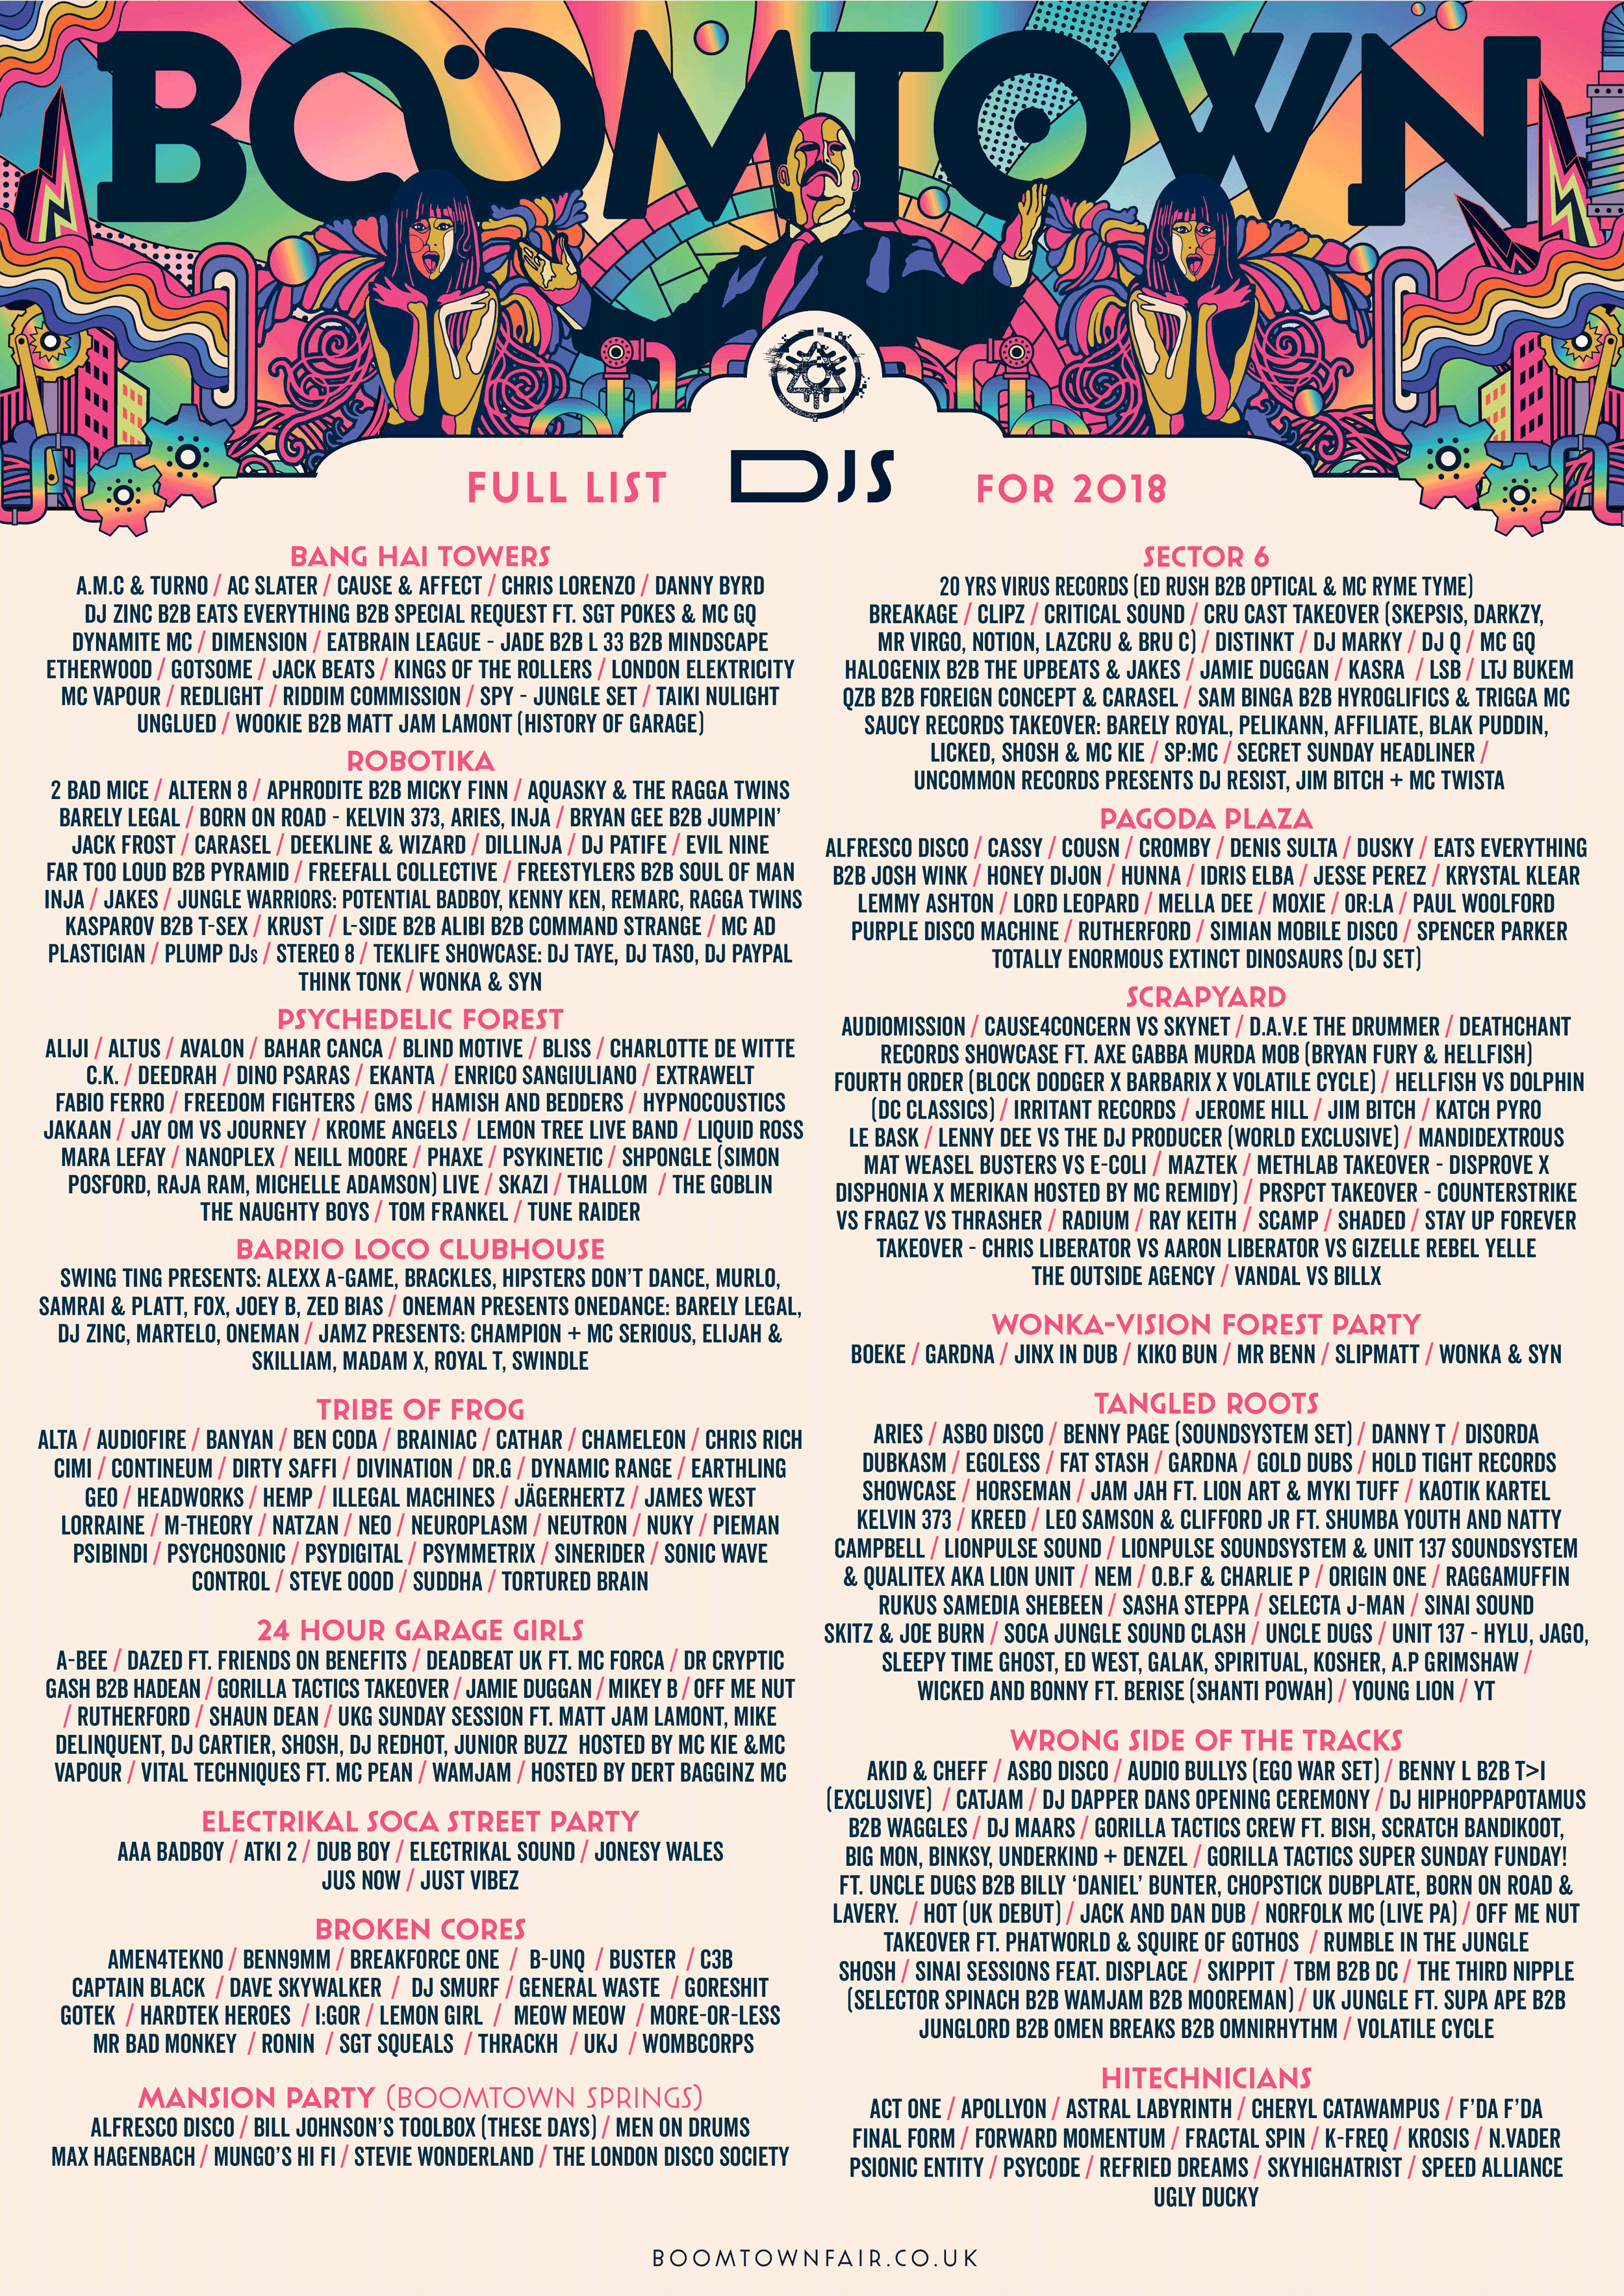 Full Line Up: Bands and DJs | Boomtown Chapter 11 - A Radical City